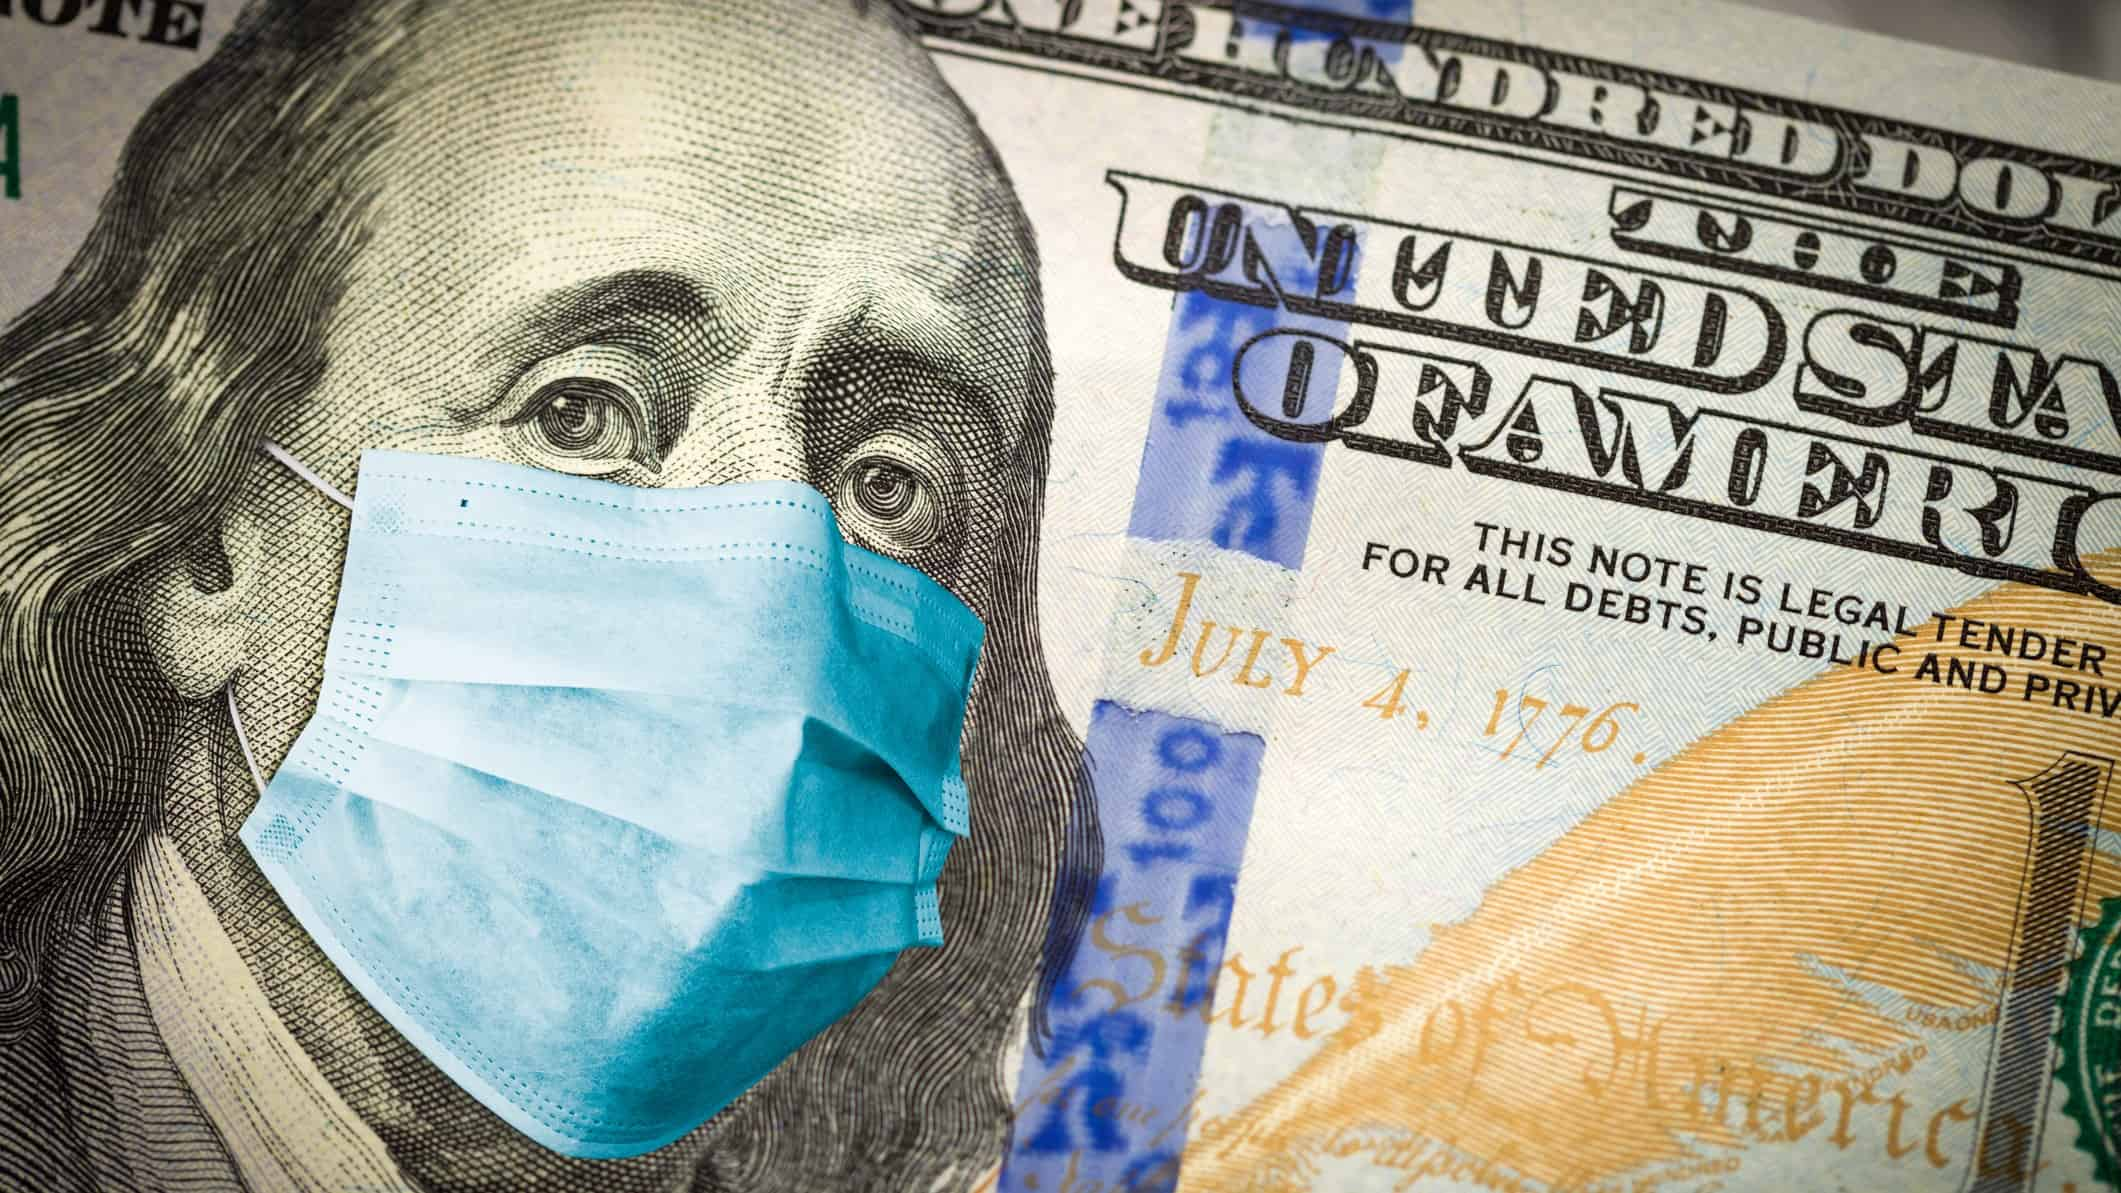 asx 200 affected by covid cases represented by American $100 note with face mask